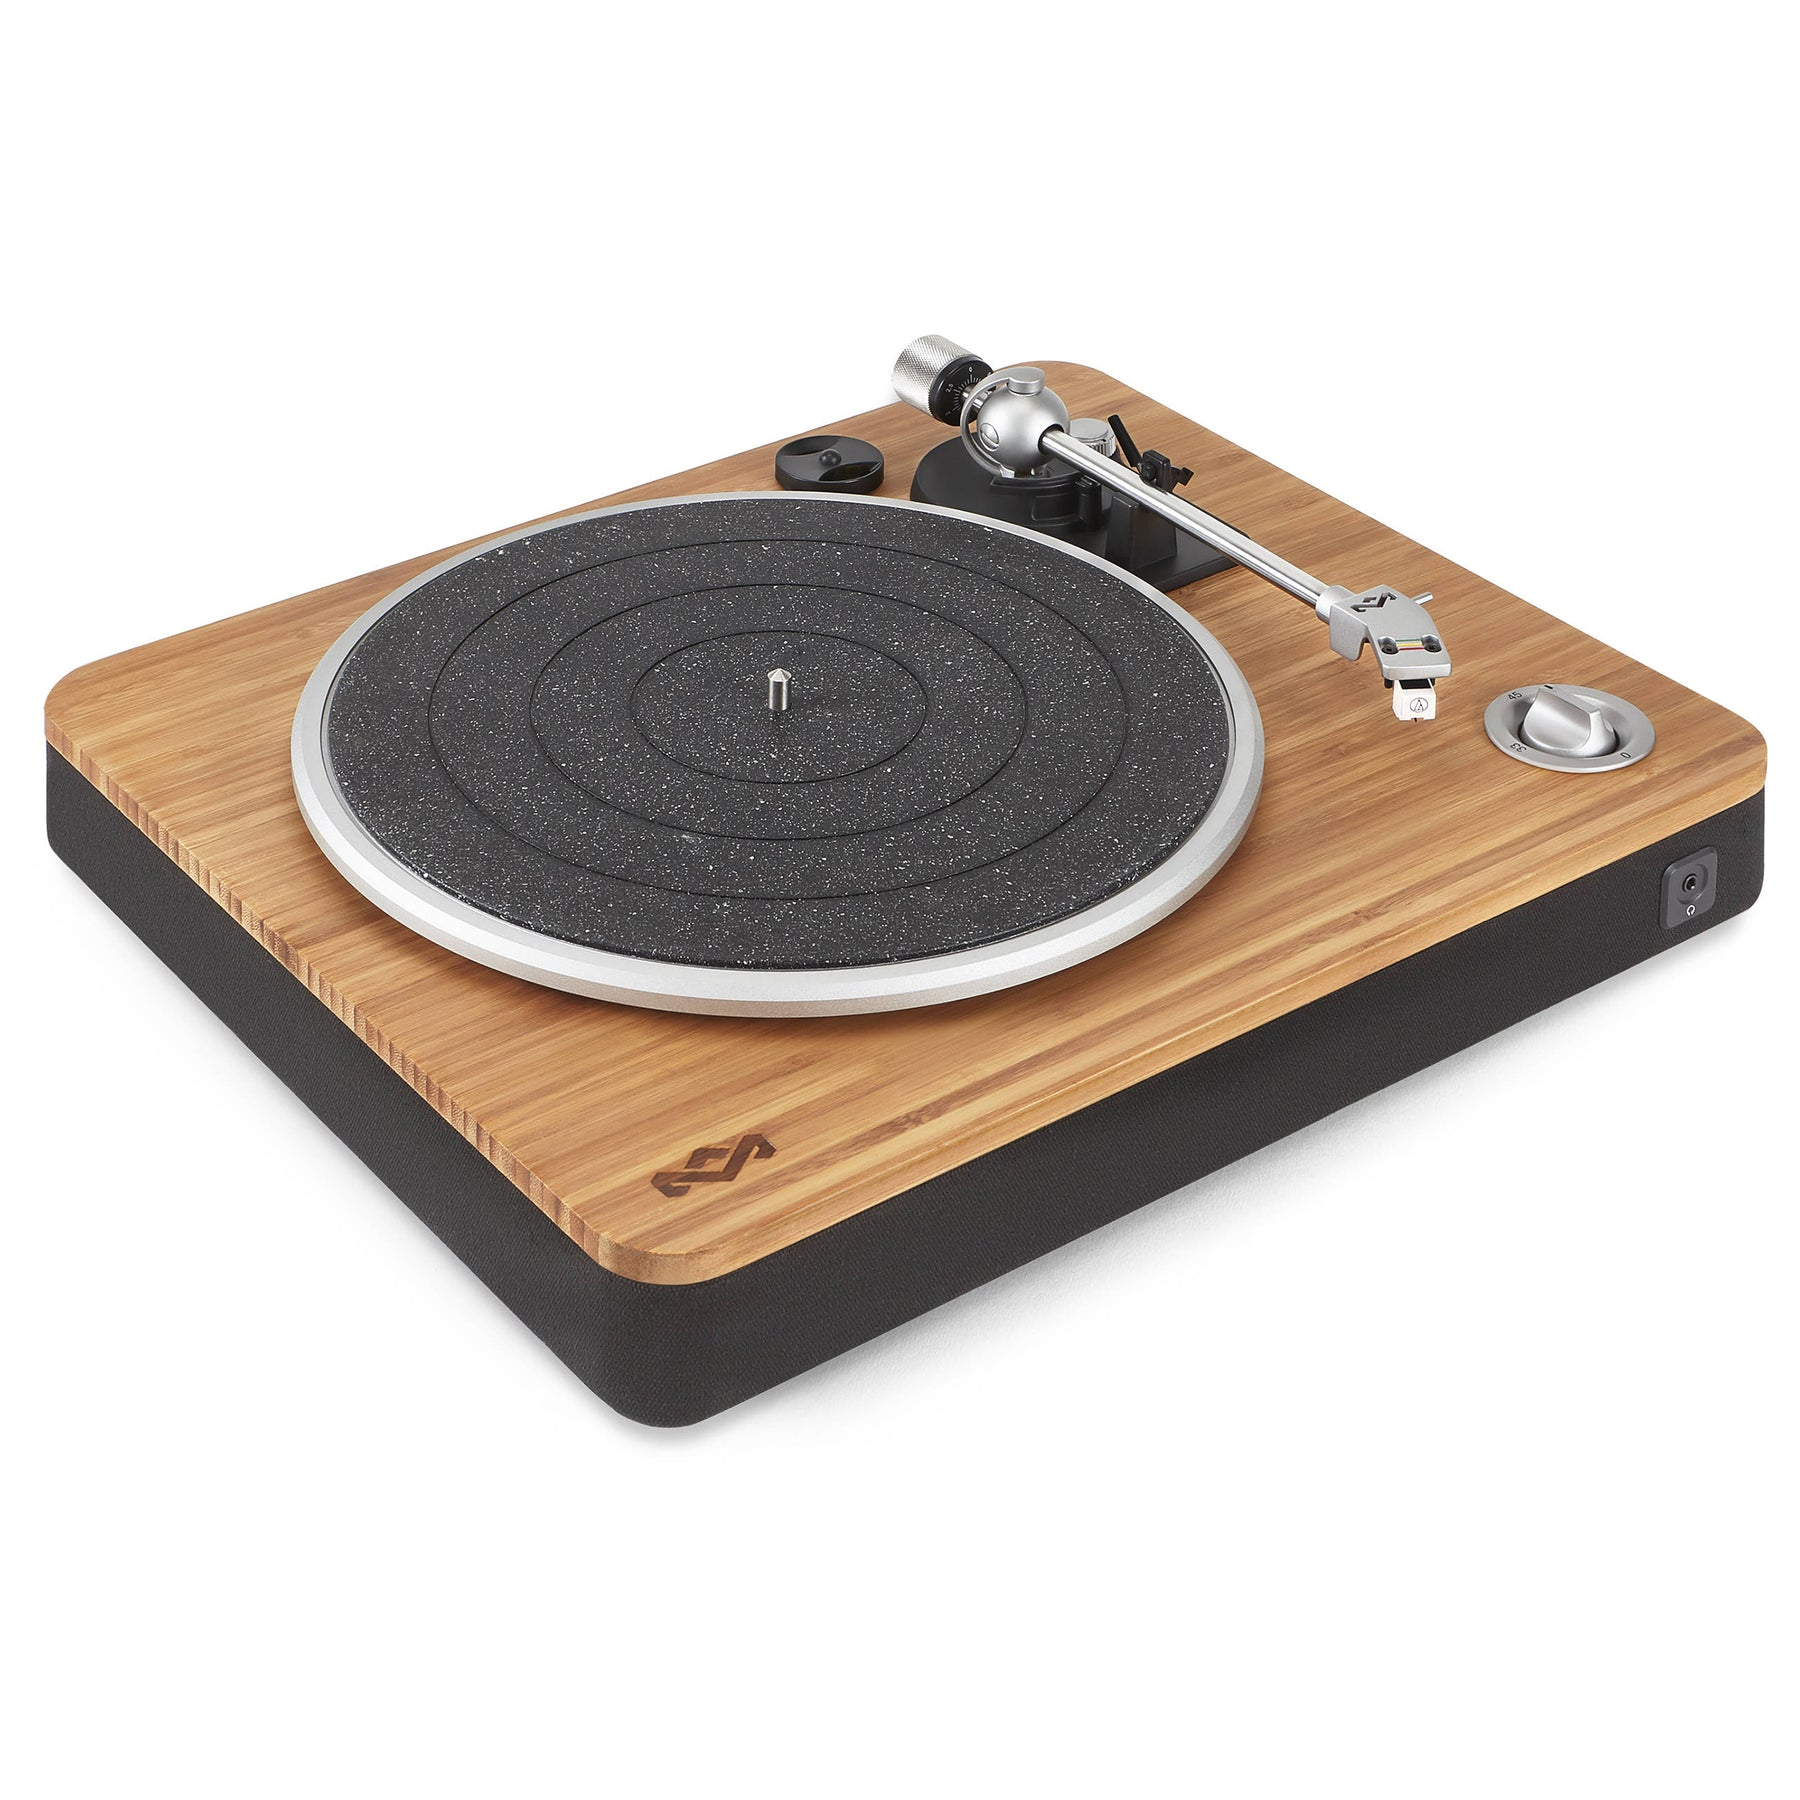 Beautiful House Of Marley: Stir It Up Turntable W/ Built In Preamp